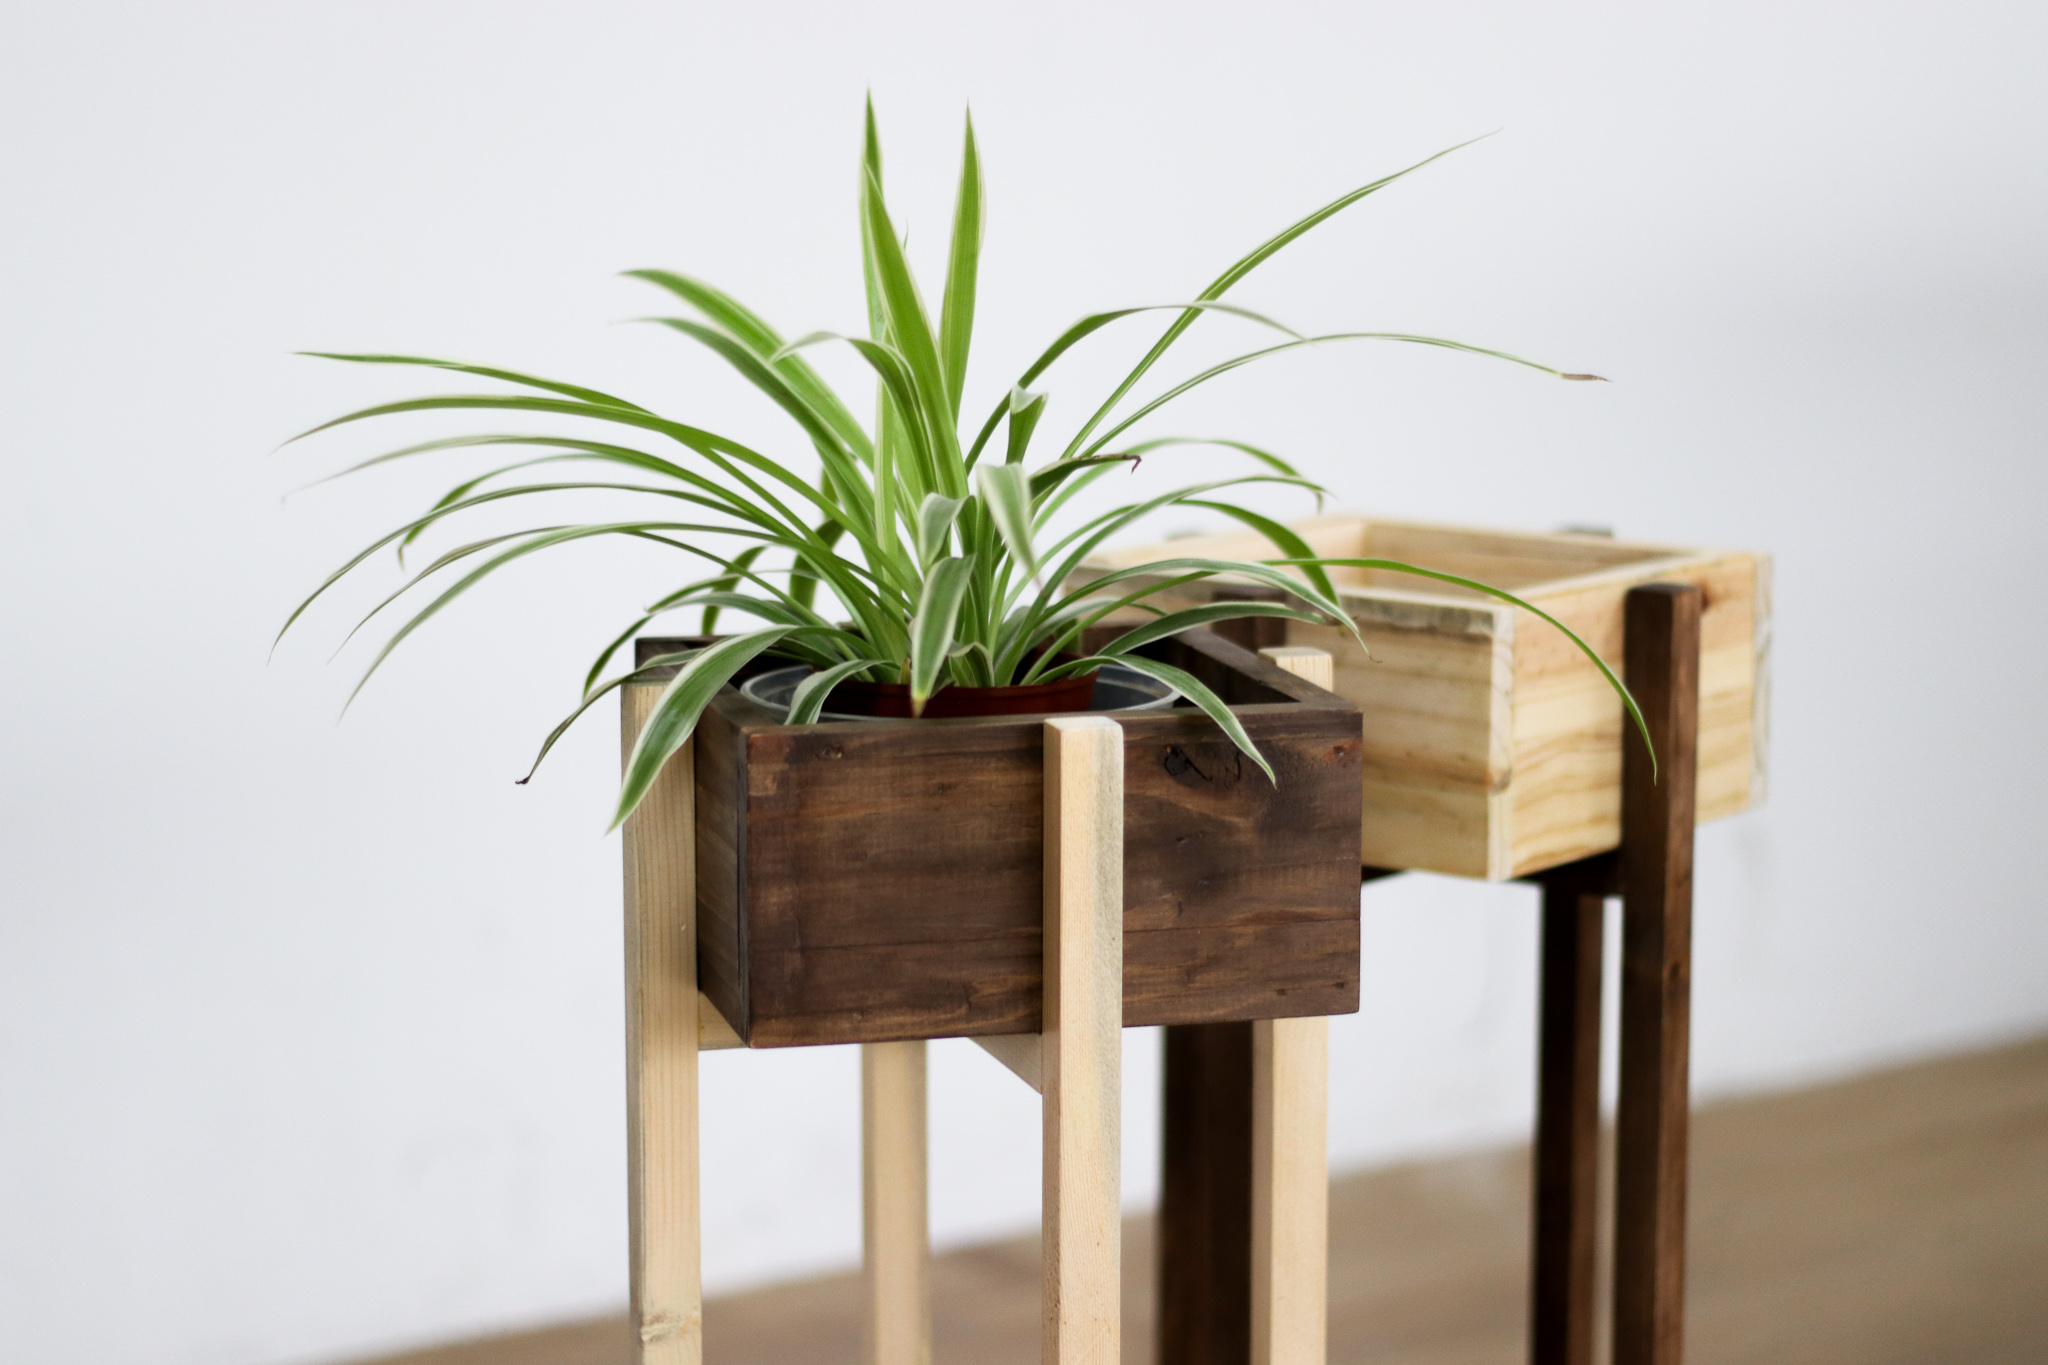 squarerooms triple eyelid studio sustainable recycled wood furniture plant pot